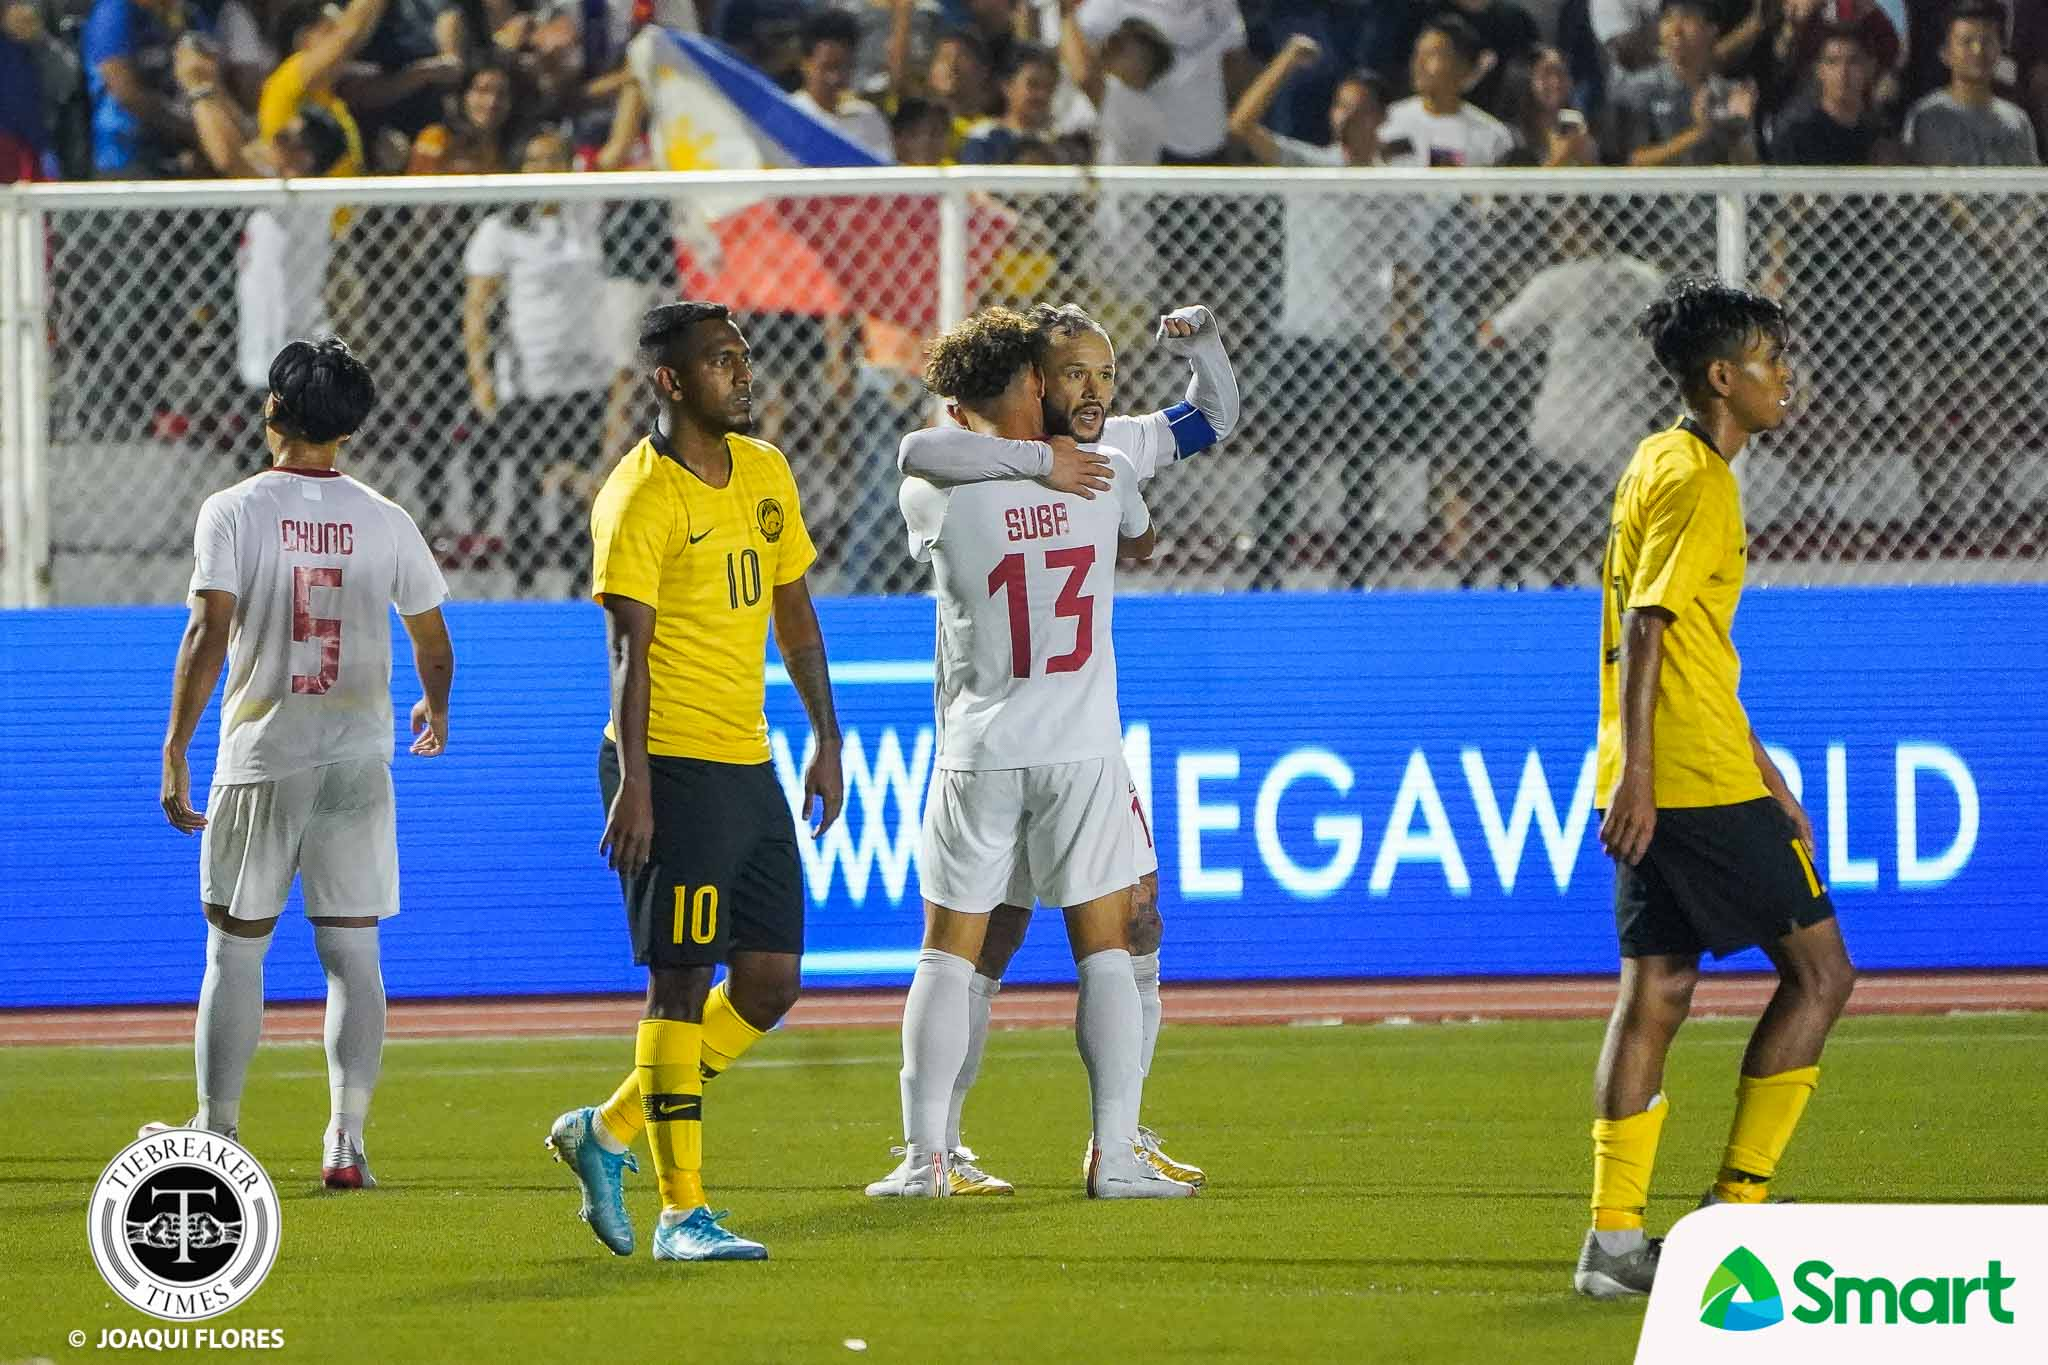 Tiebreaker Times Schrock strikes as Philippine Azkals revitalize semifinals bid with Malaysia scalp 2019 SEA Games Football News Philippine Azkals  Stephan Schrock Muhammad Haziq Nadzli Malaysia (Football) Chima Uzoka Anthony Pinthus Amani Aguinaldo Abdul Razak 2019 SEA Games - Football 2019 SEA Games